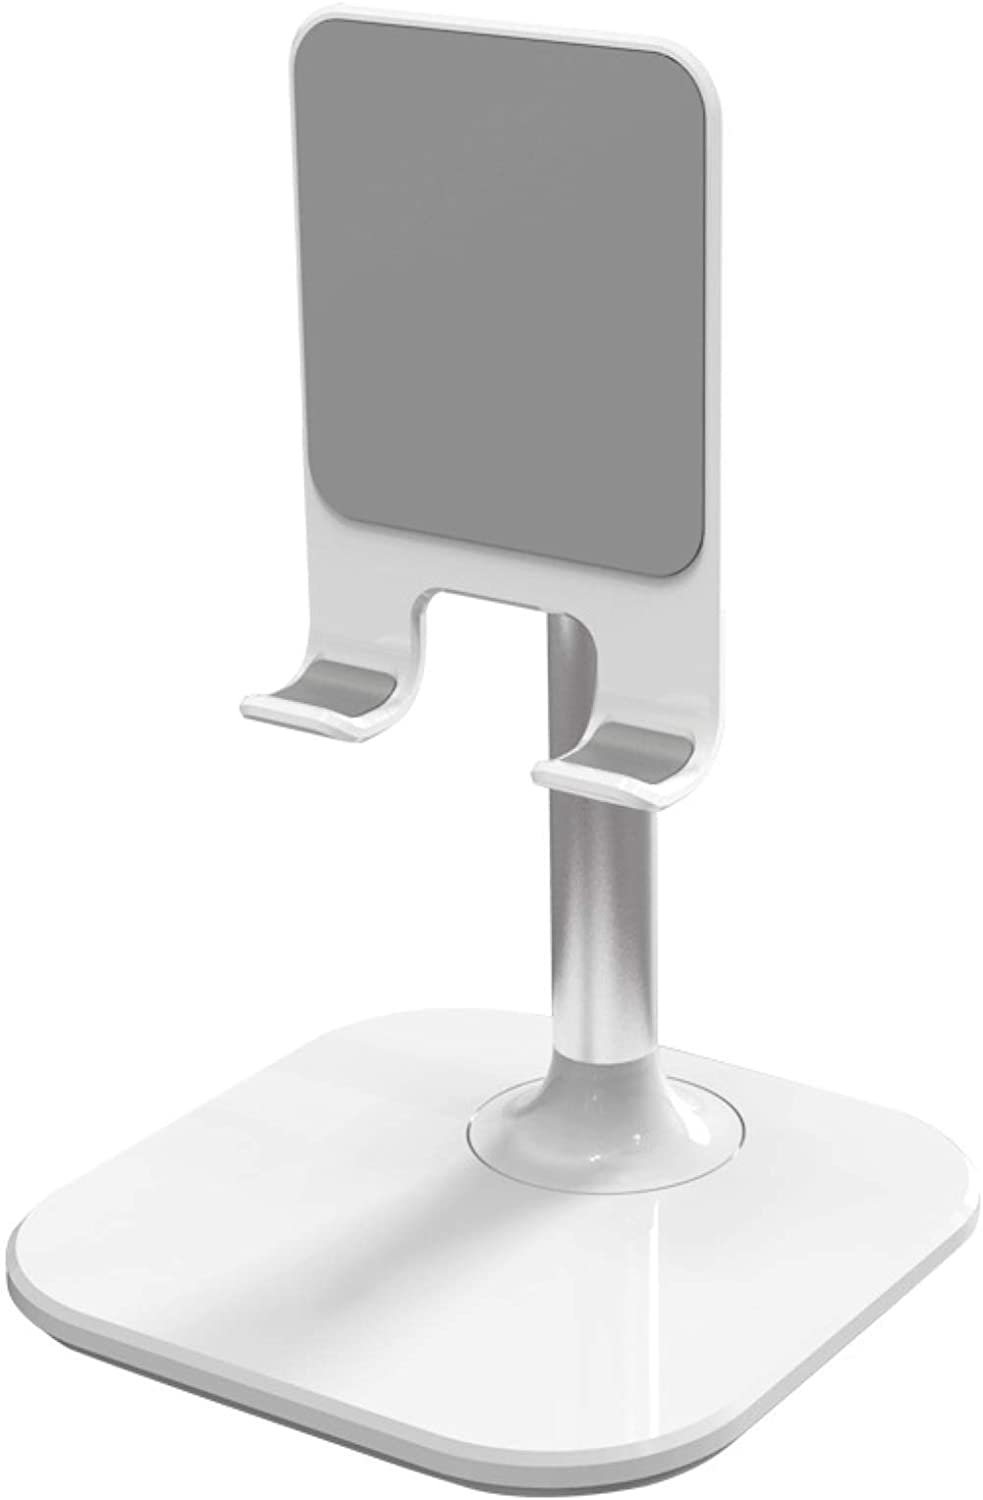 MOHALIKO Cell Phone Stand, Adjustable Cell Phone Stand, Anti-Slip Adjustable Retractable Aluminum Alloy Desktop Phone Tablet Holder Compatible Most of Smartphones White